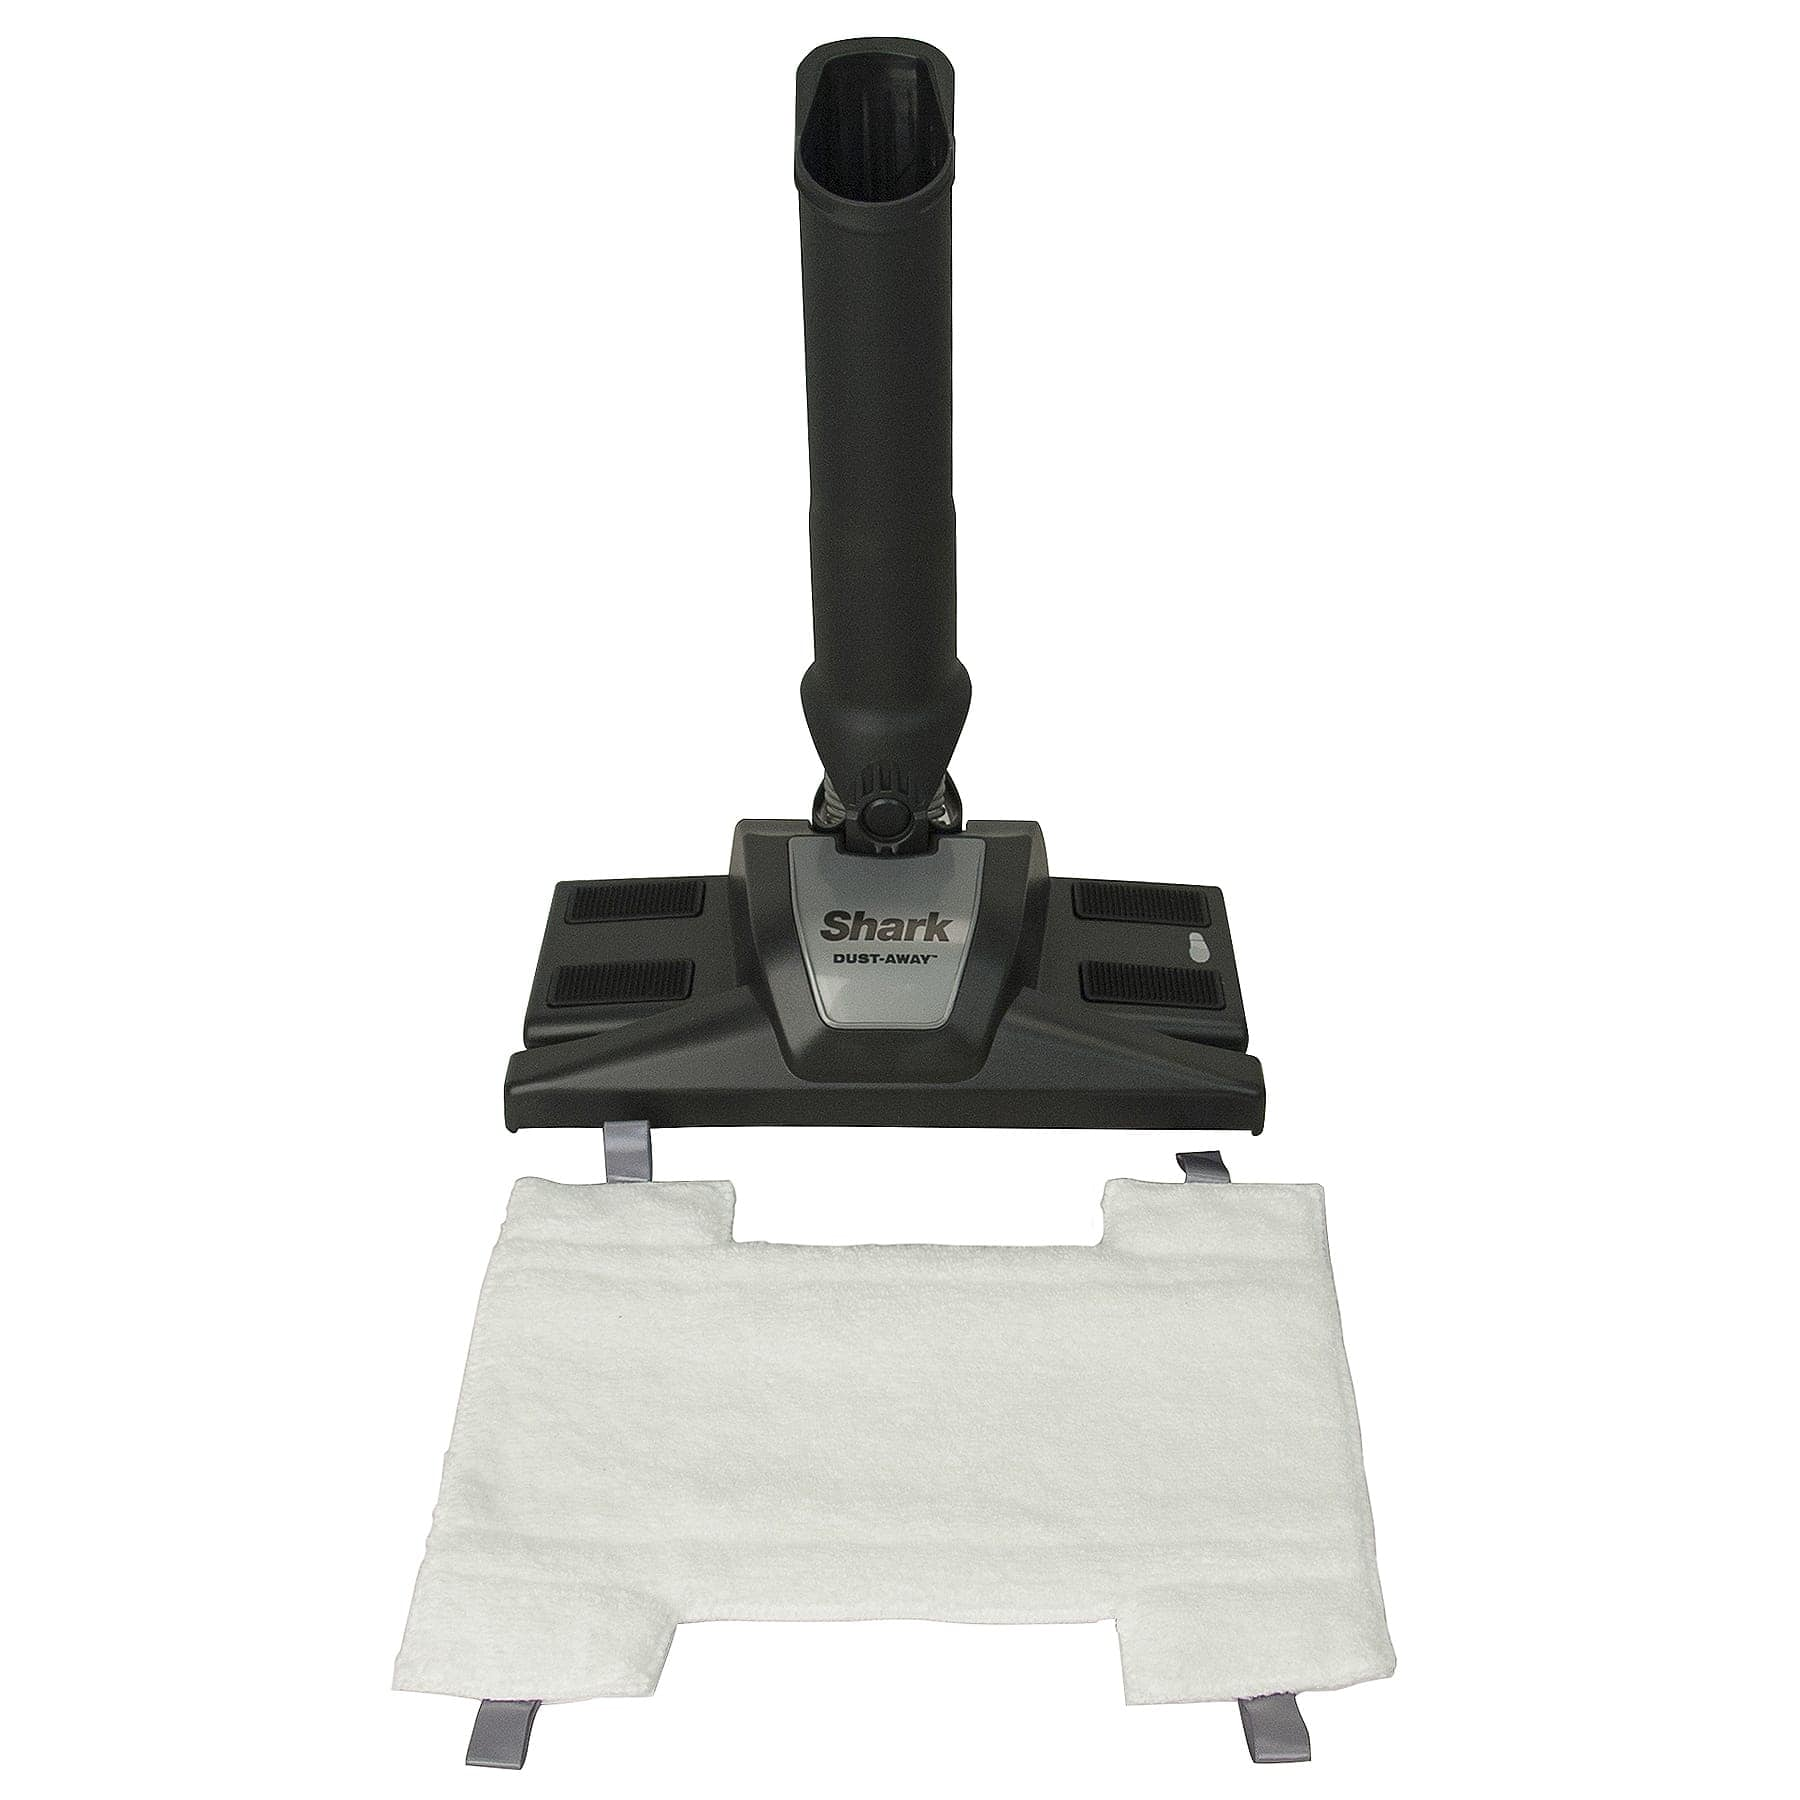 Canister caddy xcy581qpl for shark navigator powered lift away dust away hard floor attachment 3995 dailygadgetfo Choice Image